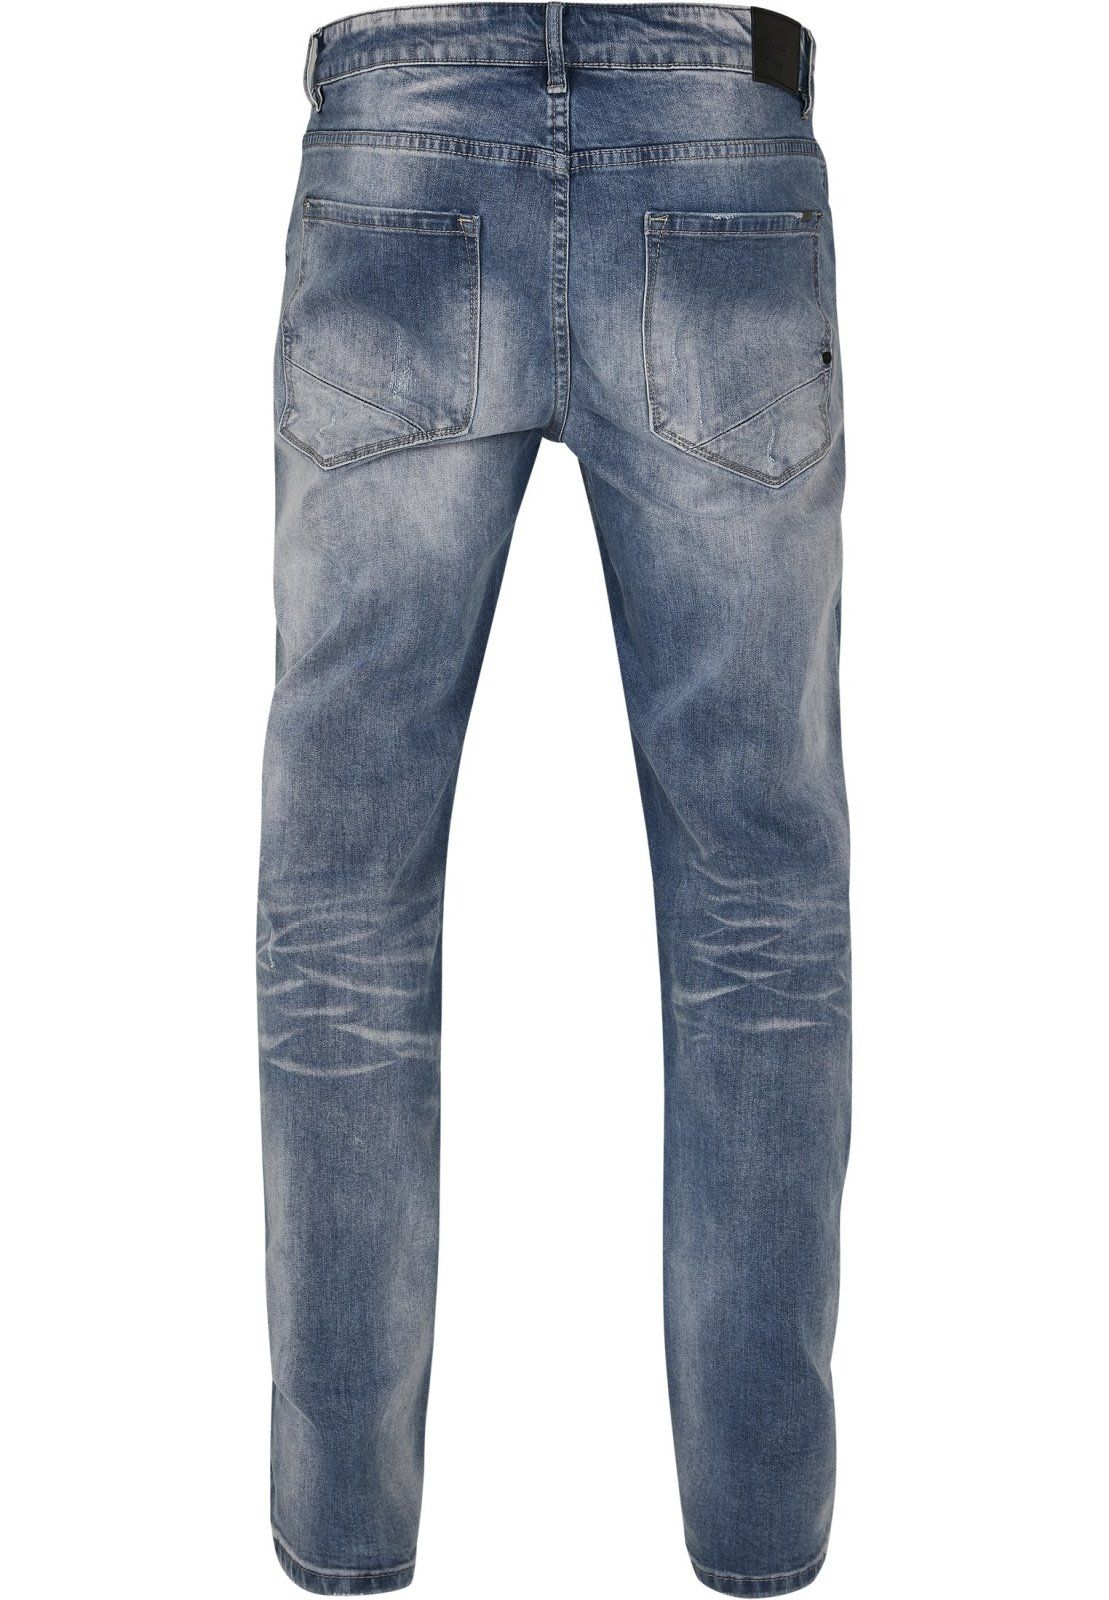 Will Washed Denim Jeans - 38/34 / Blue Washed